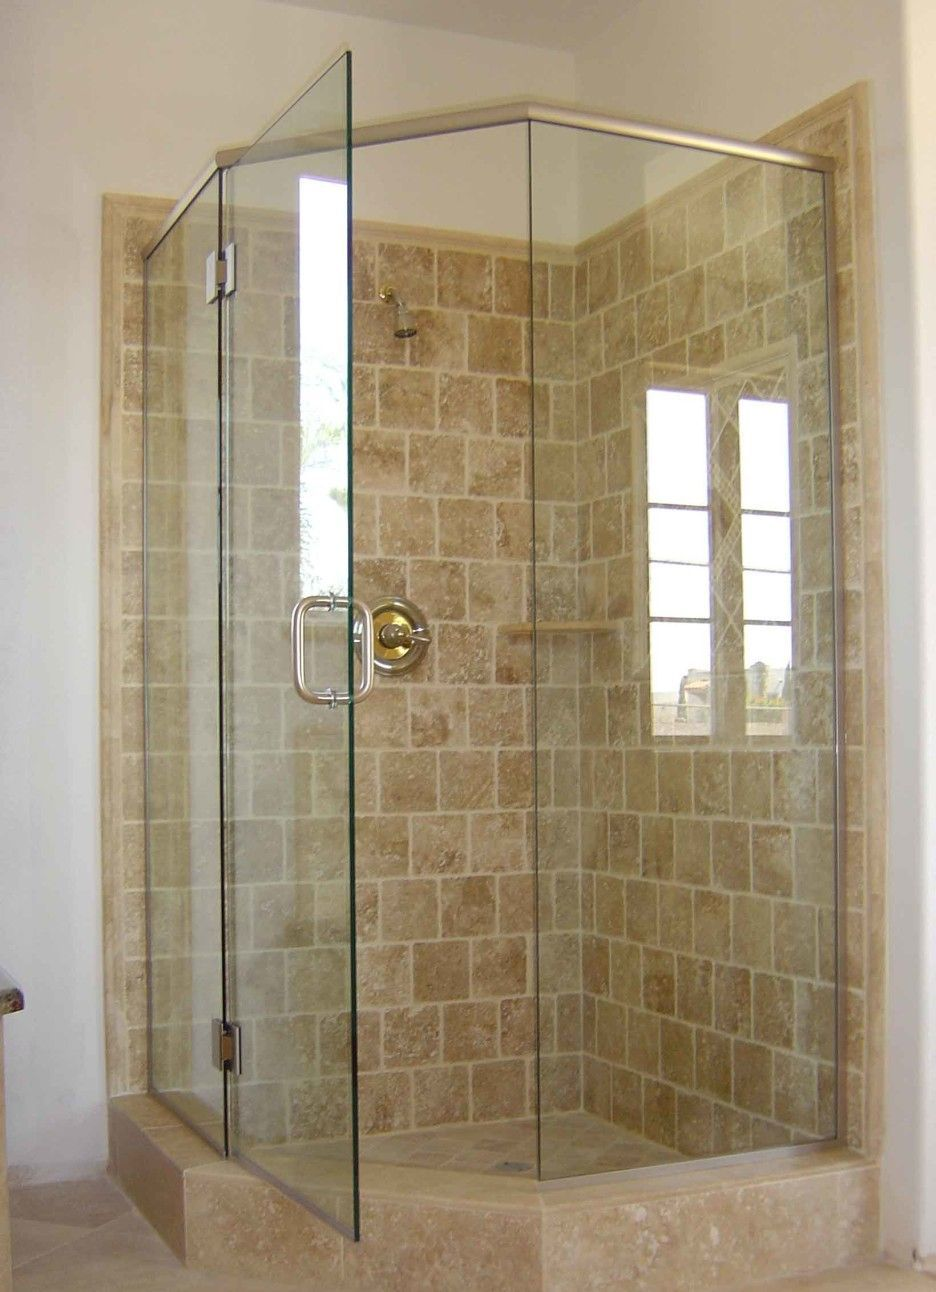 Bathroom. curved shape glass shower stall with metal door